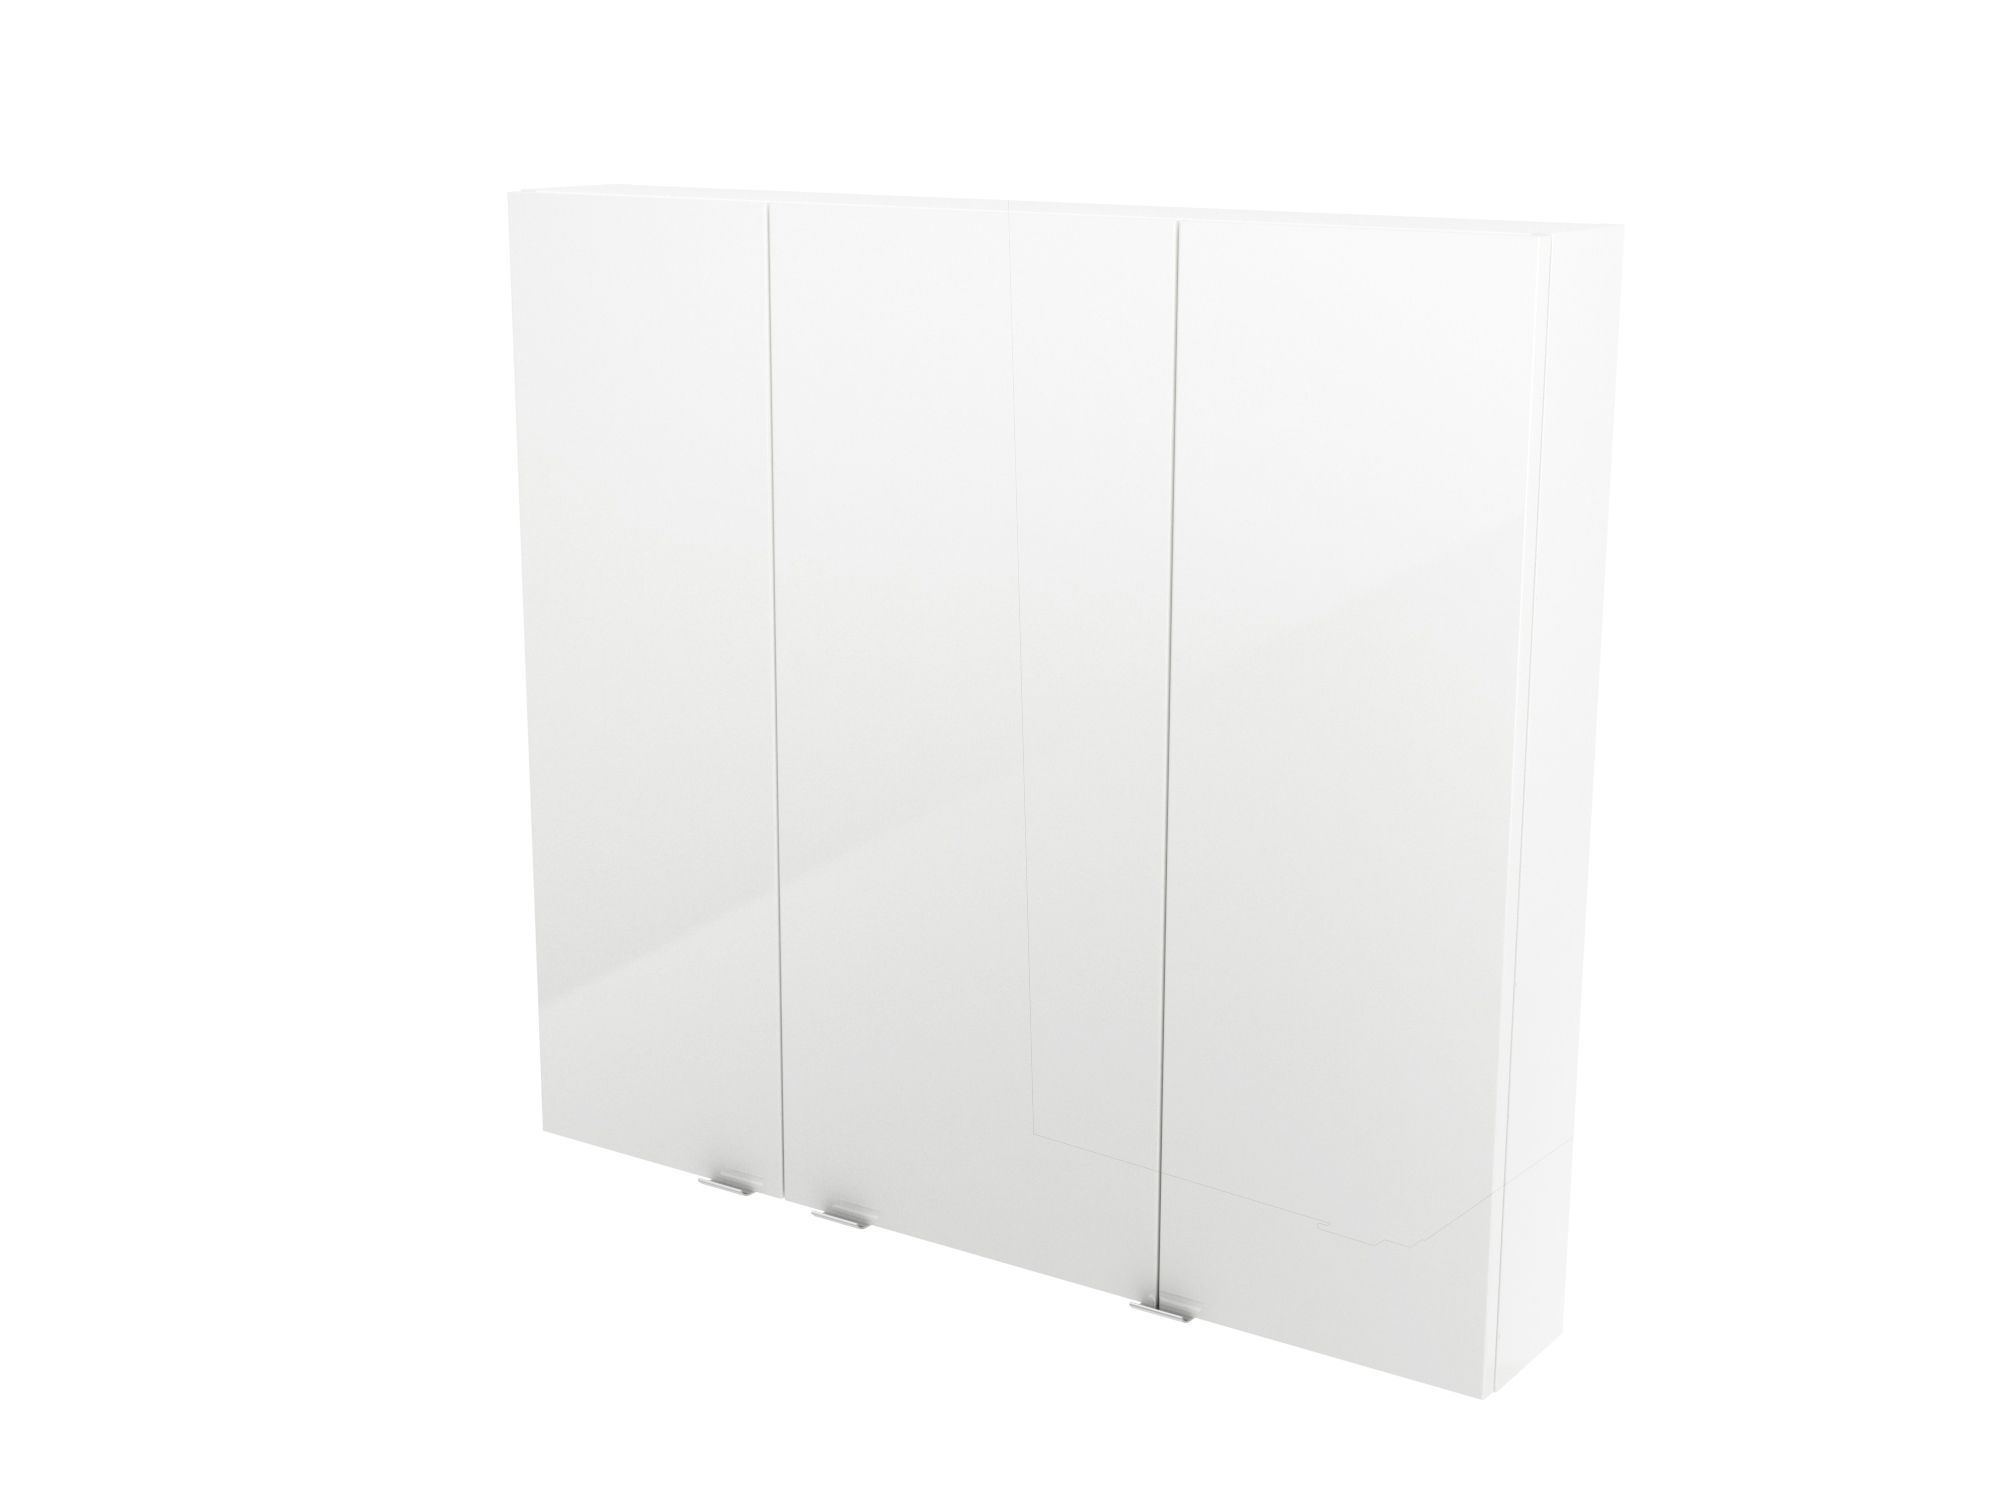 Cooke & Lewis Imandra Gloss White Wall Cabinet, (w)1000mm